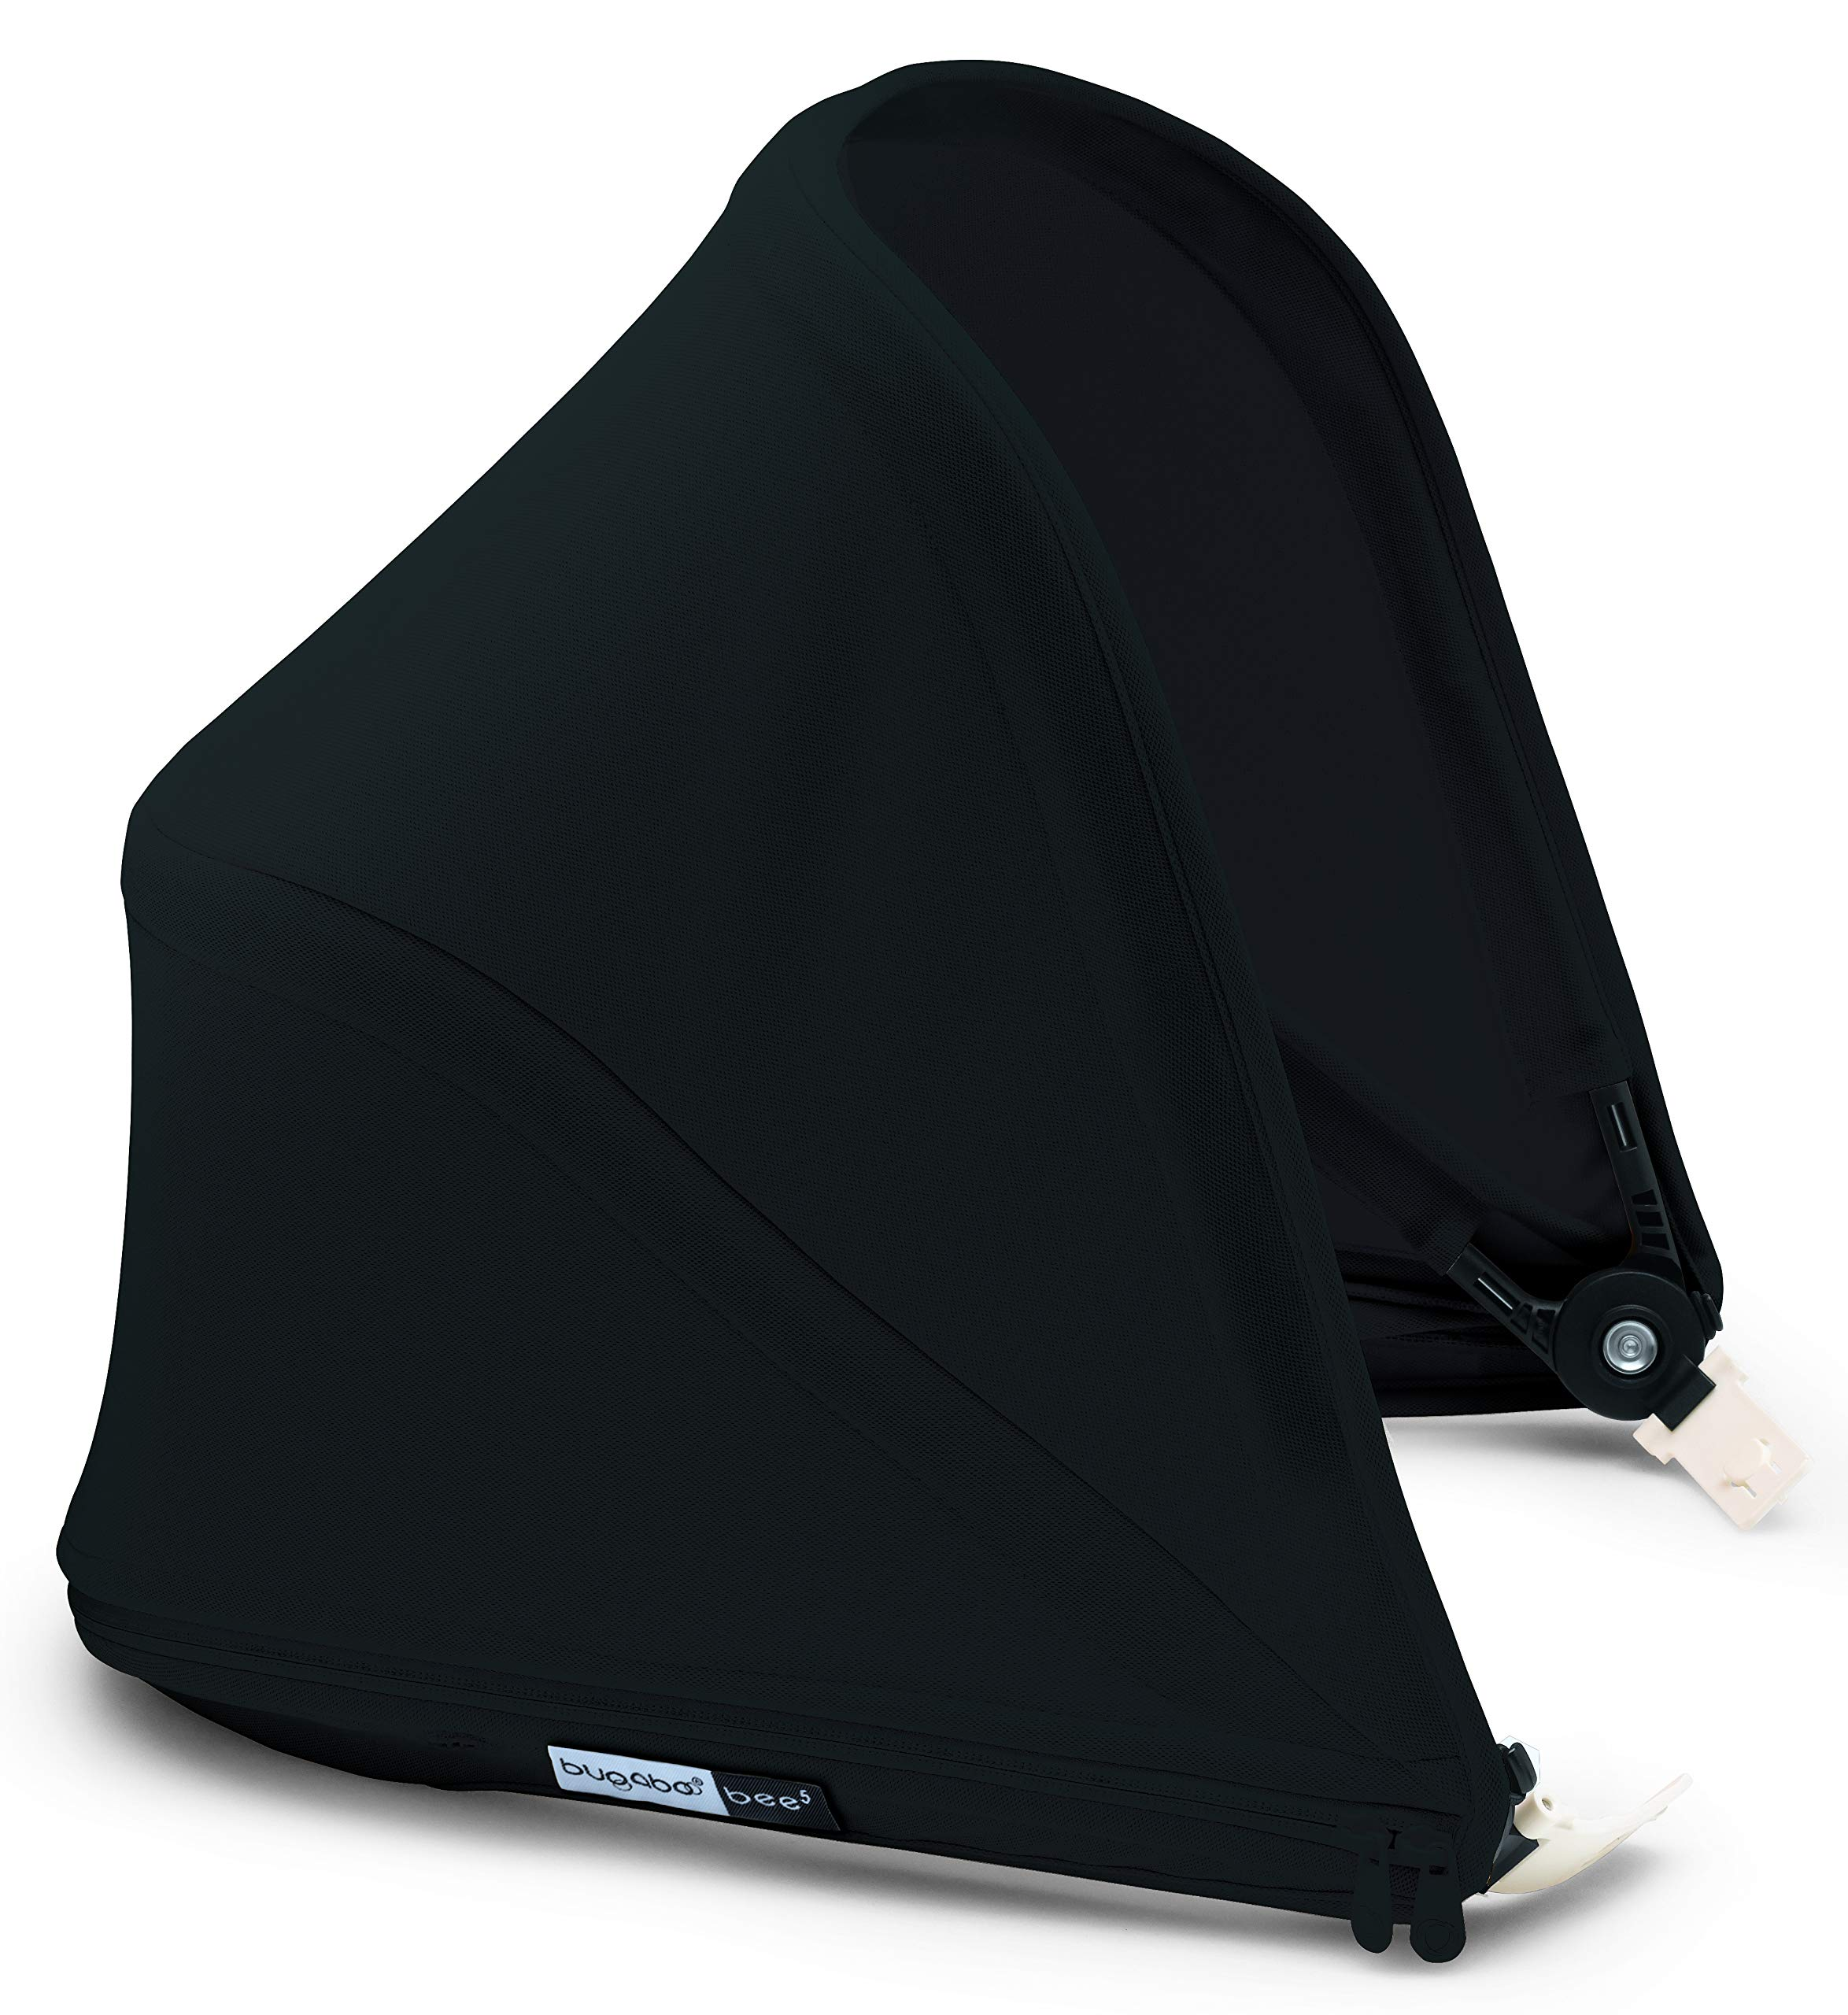 Bugaboo Bee5 Sun Canopy, Black - Extendable Sun Shade for Full Weather Protection, Machine Washable by Bugaboo